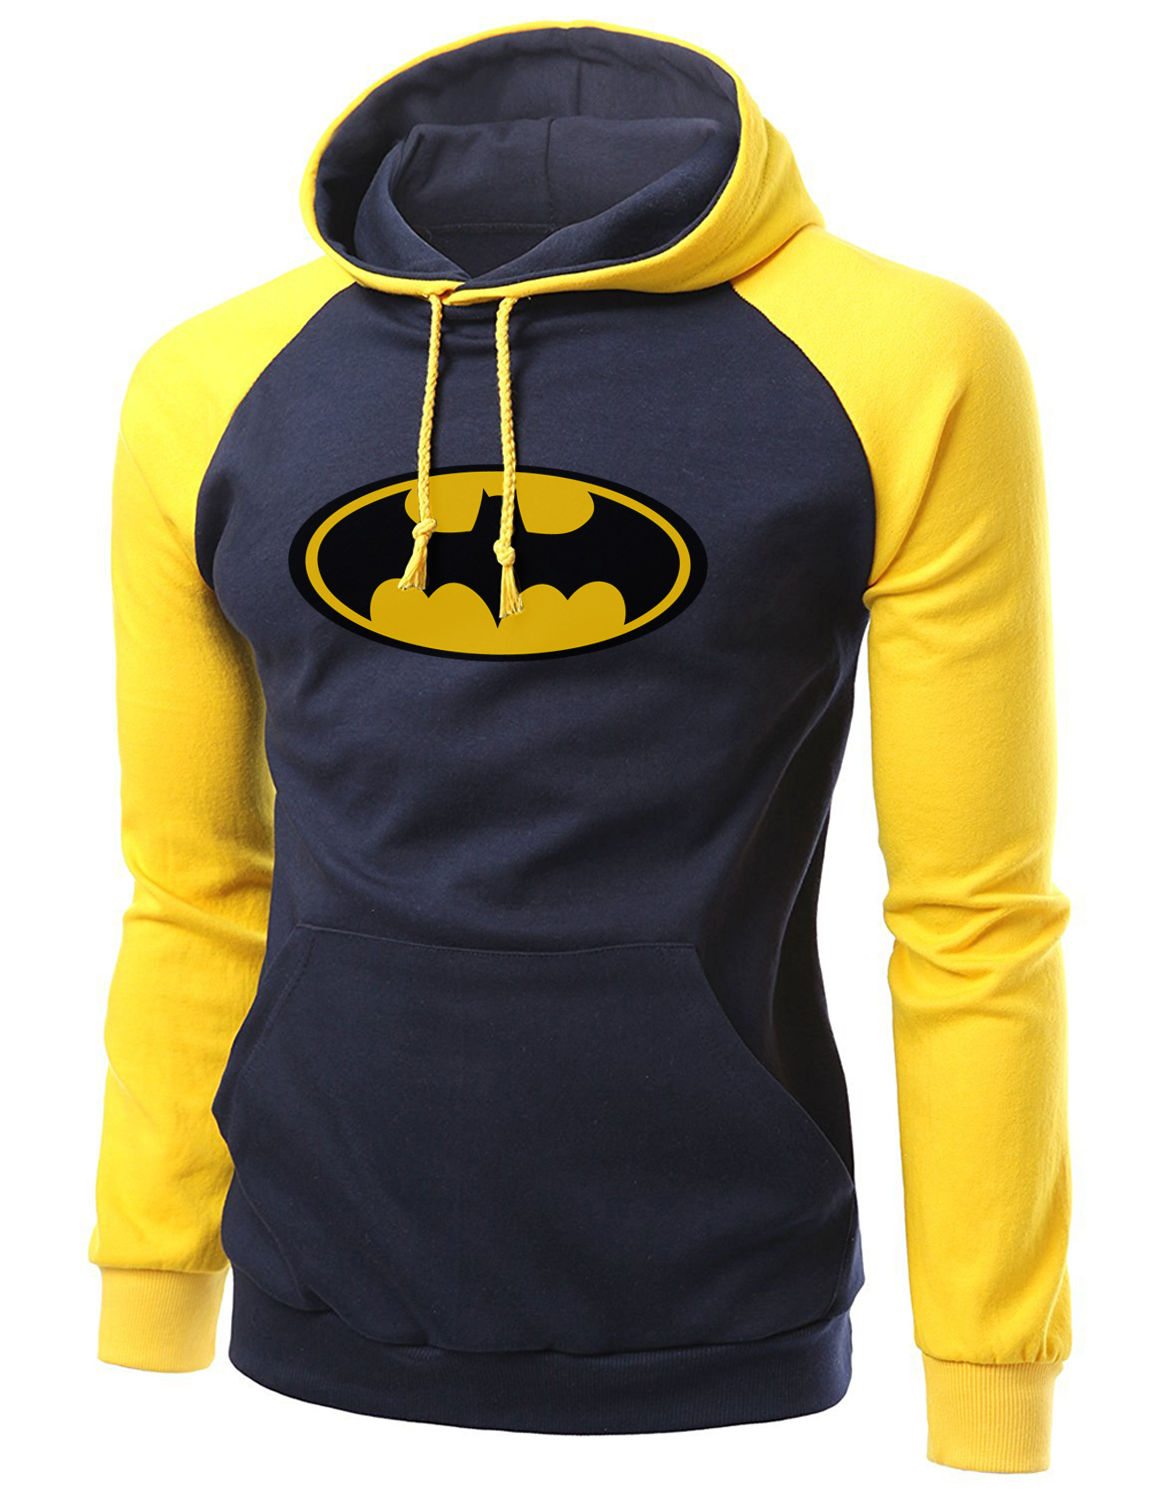 Super Hero Batman logo printed Raglan Hoodies Sweatshirts Men 2019 Hot Spring Fleece Men's Tracksuit Slim Fit Hip Hop Streetwear